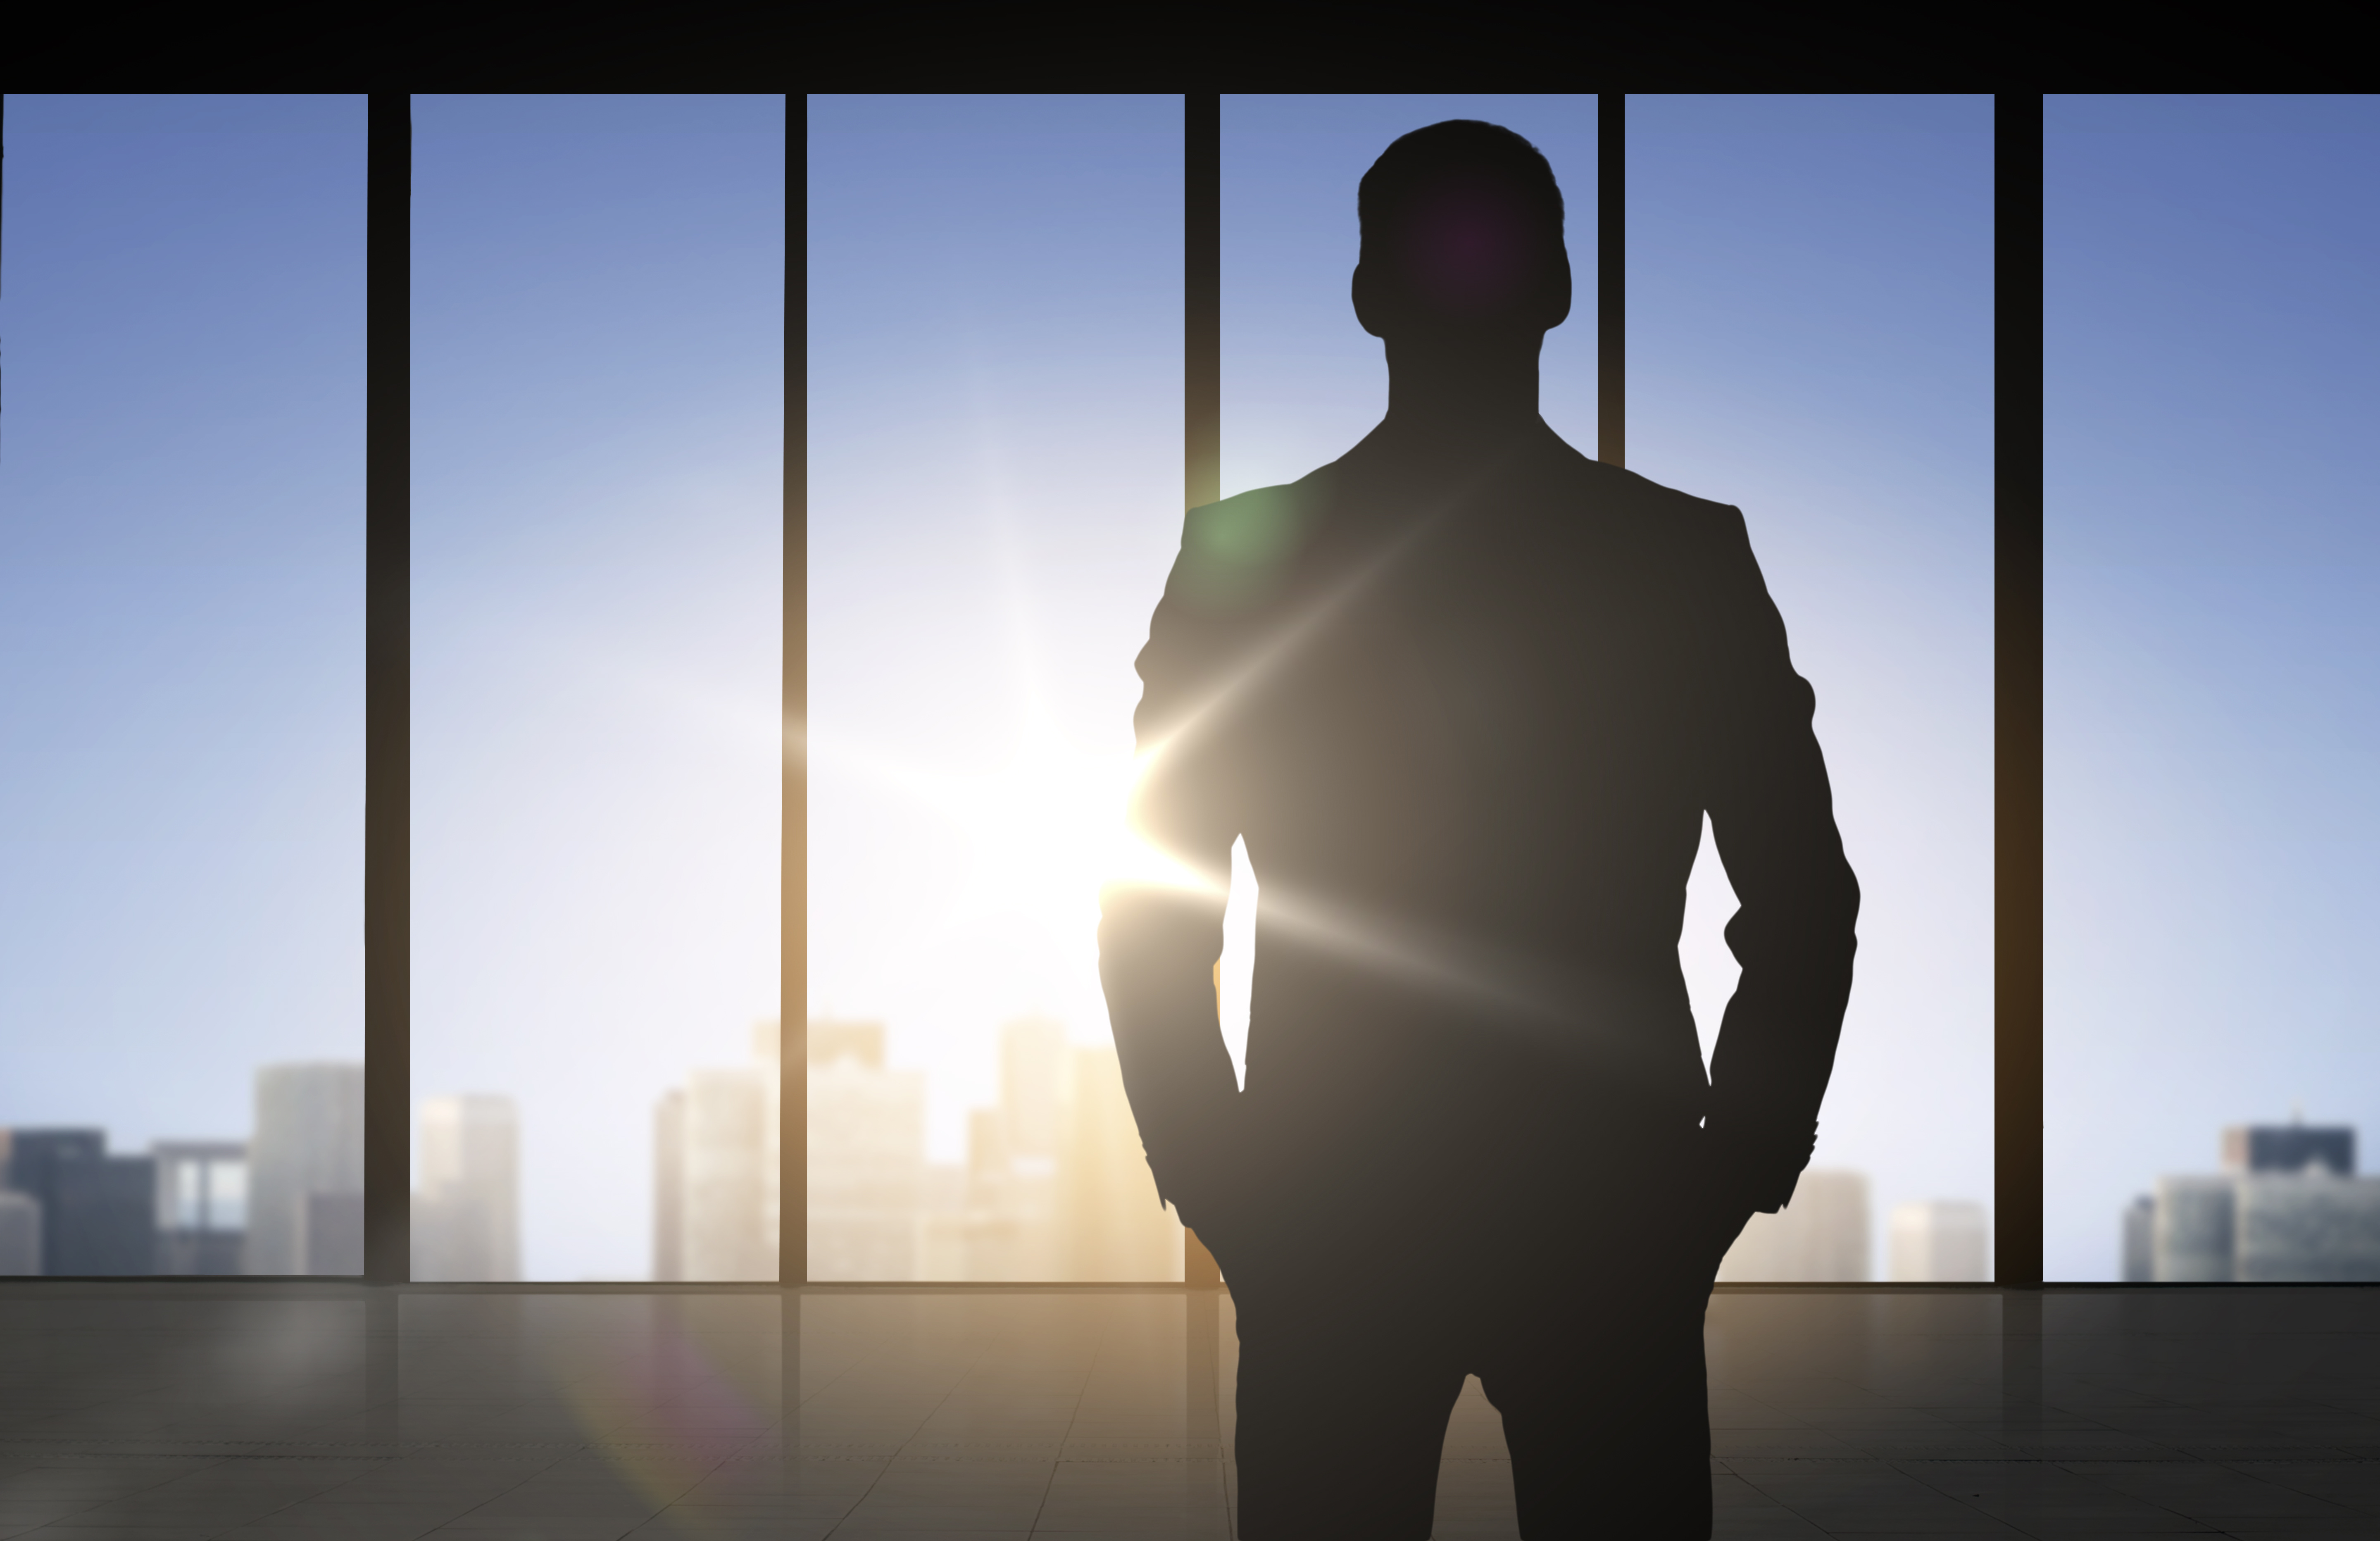 Man standing in office building looking out window.